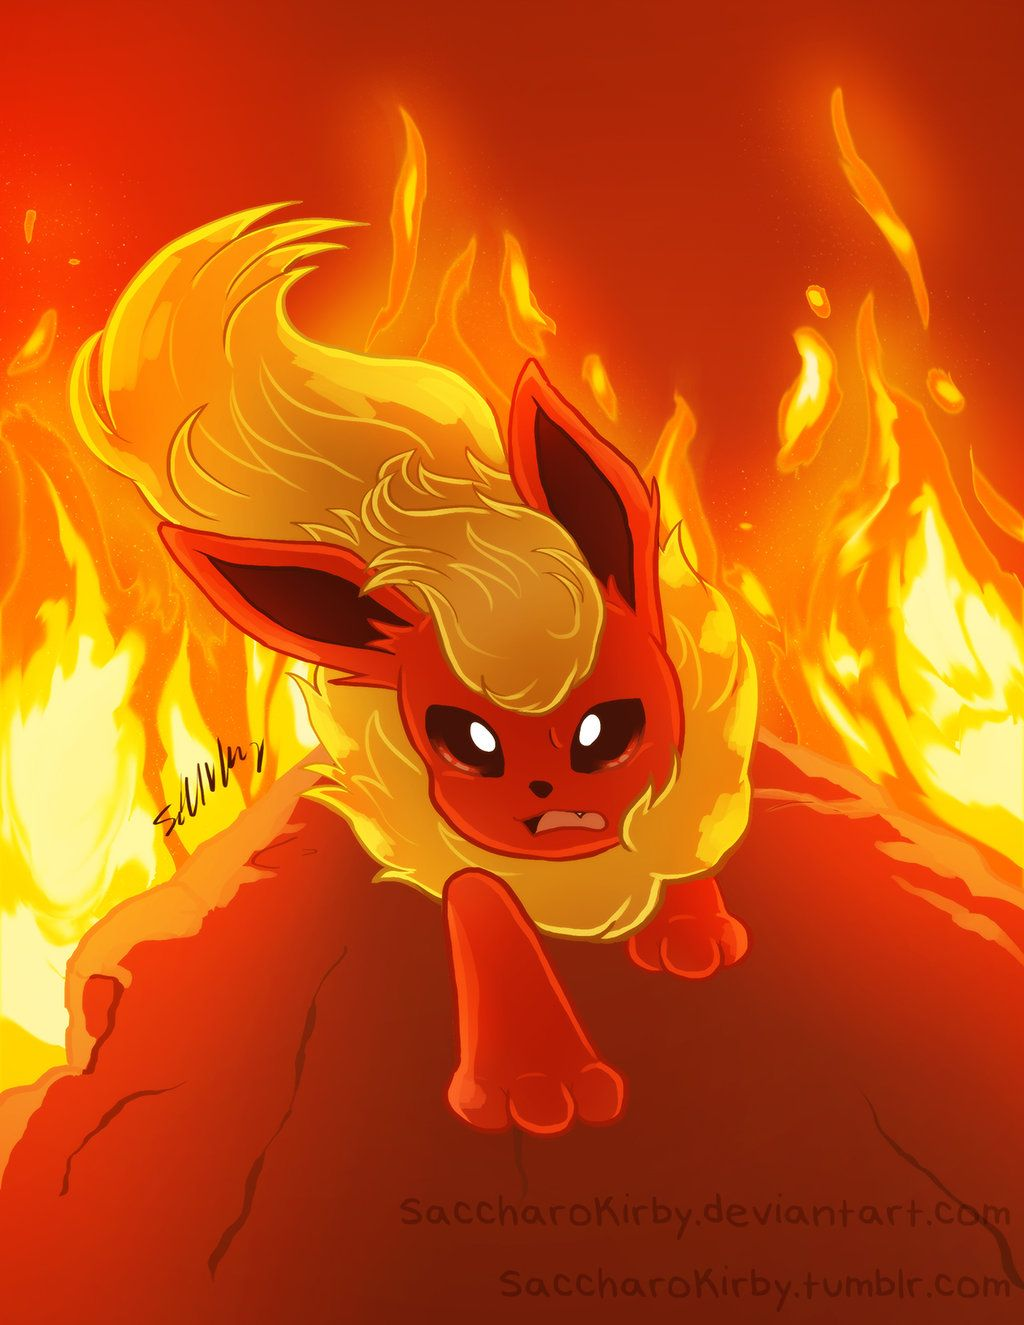 Eeveelution Drawing: Flareon by SaccharoKirby on DeviantArt